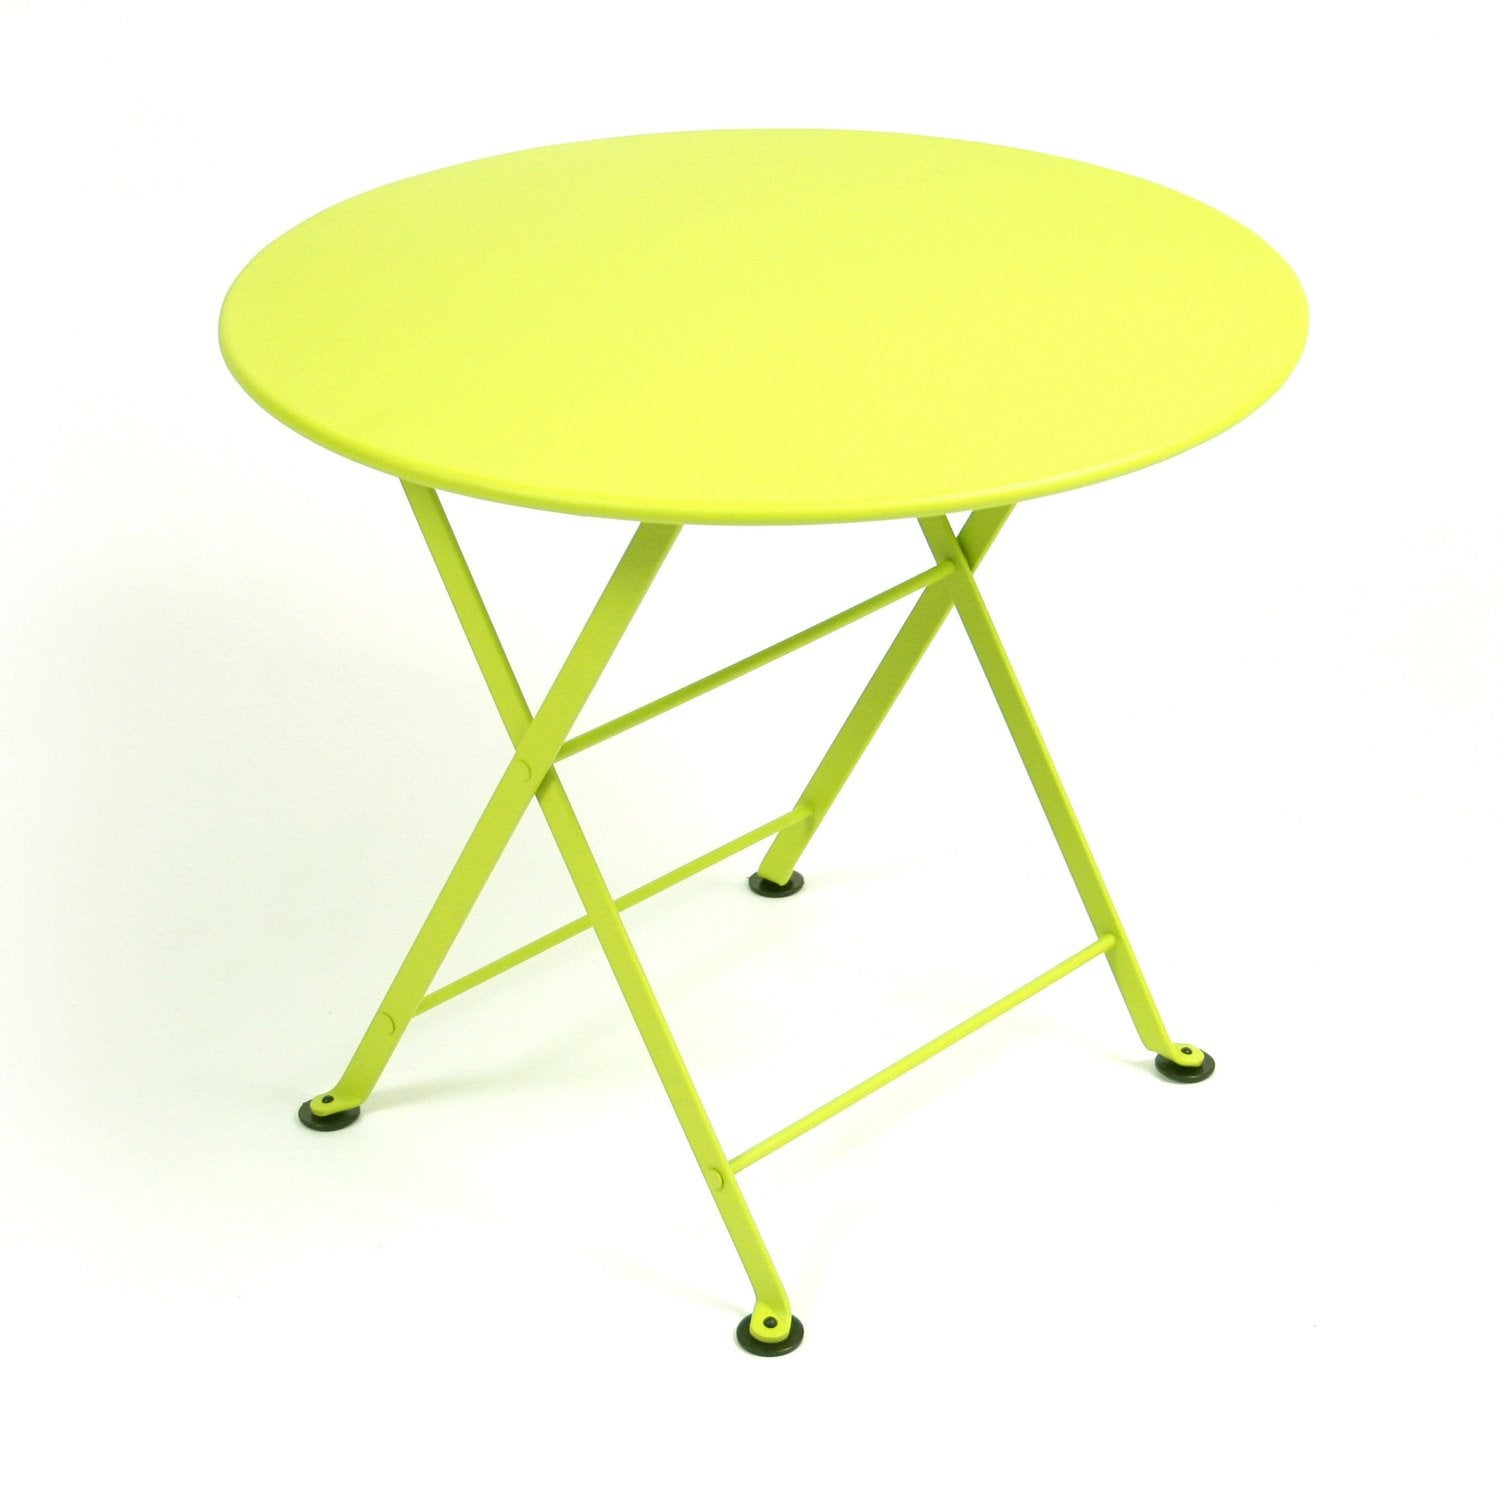 Emejing table ronde pour salon de jardin ideas bikeparty for Table de jardin